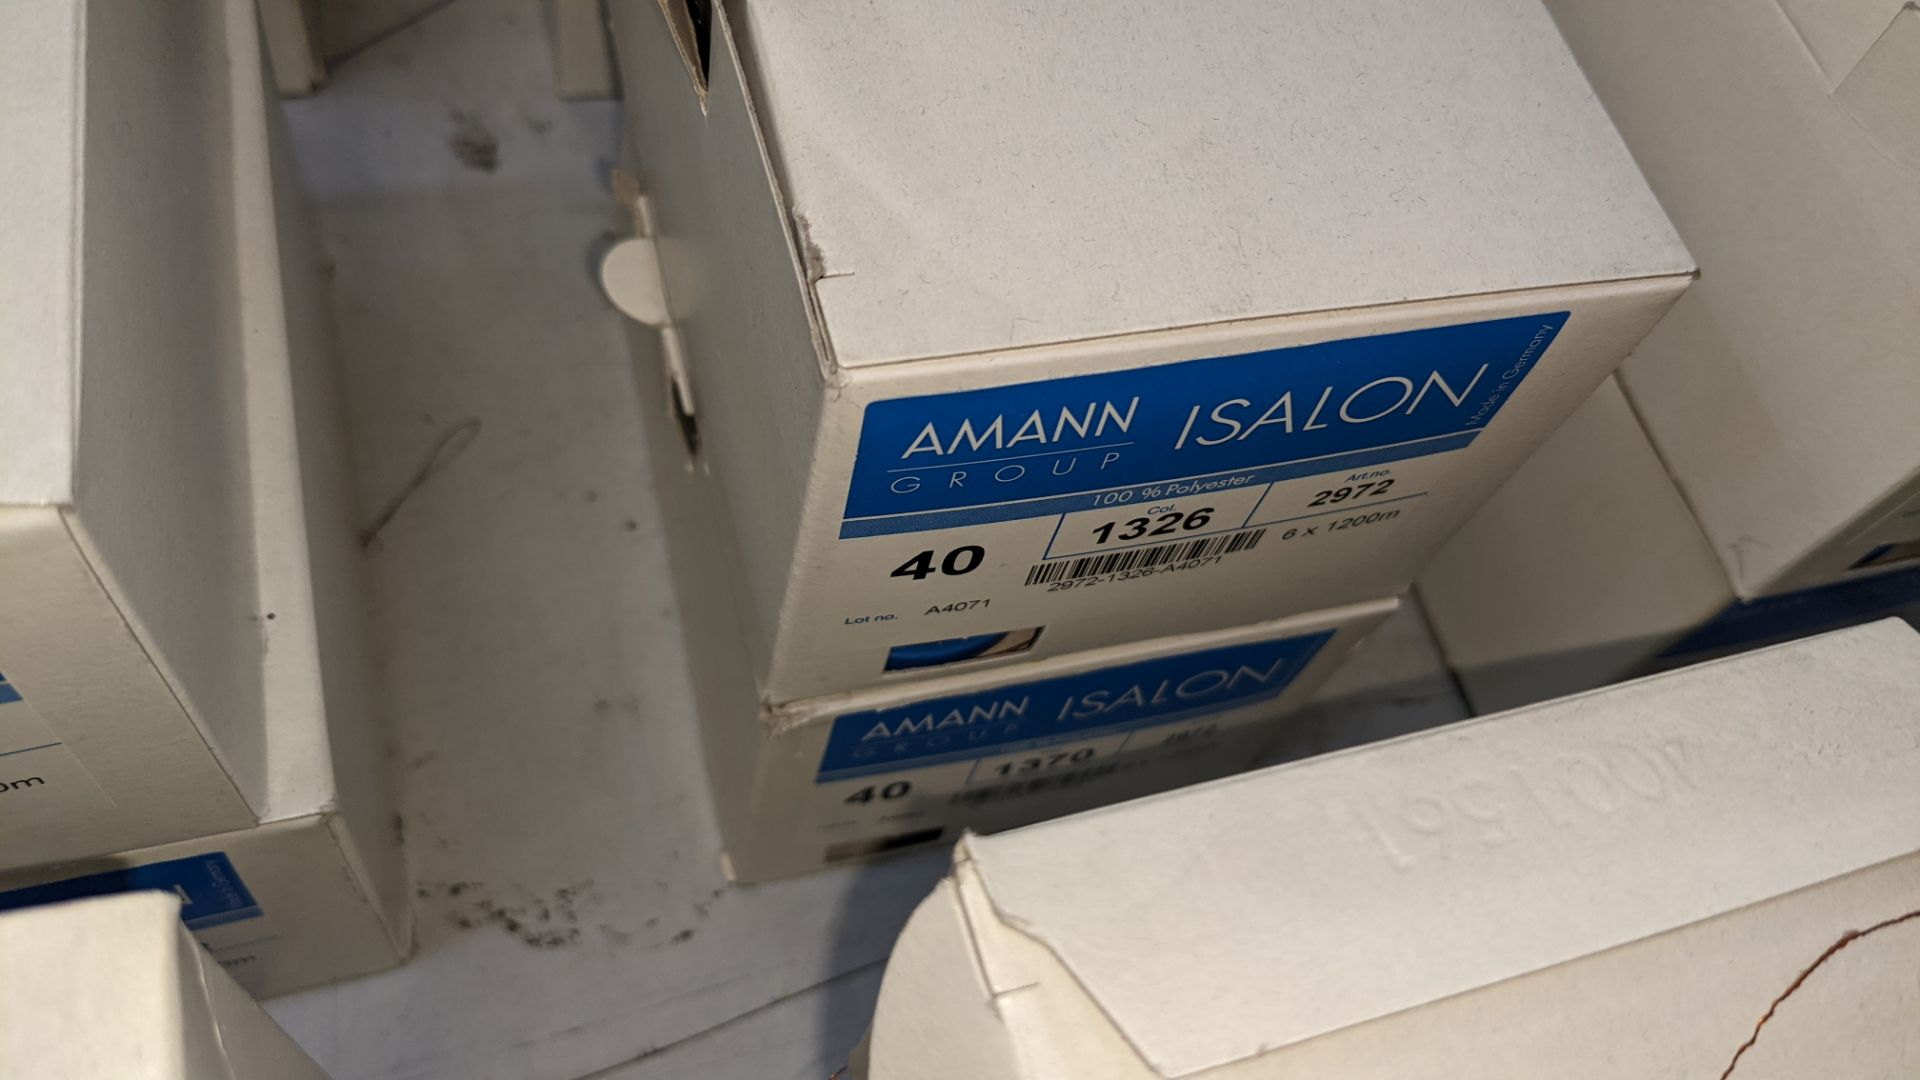 12 boxes of Amann Group ISALON 40 polyester embroidery thread - Image 8 of 11